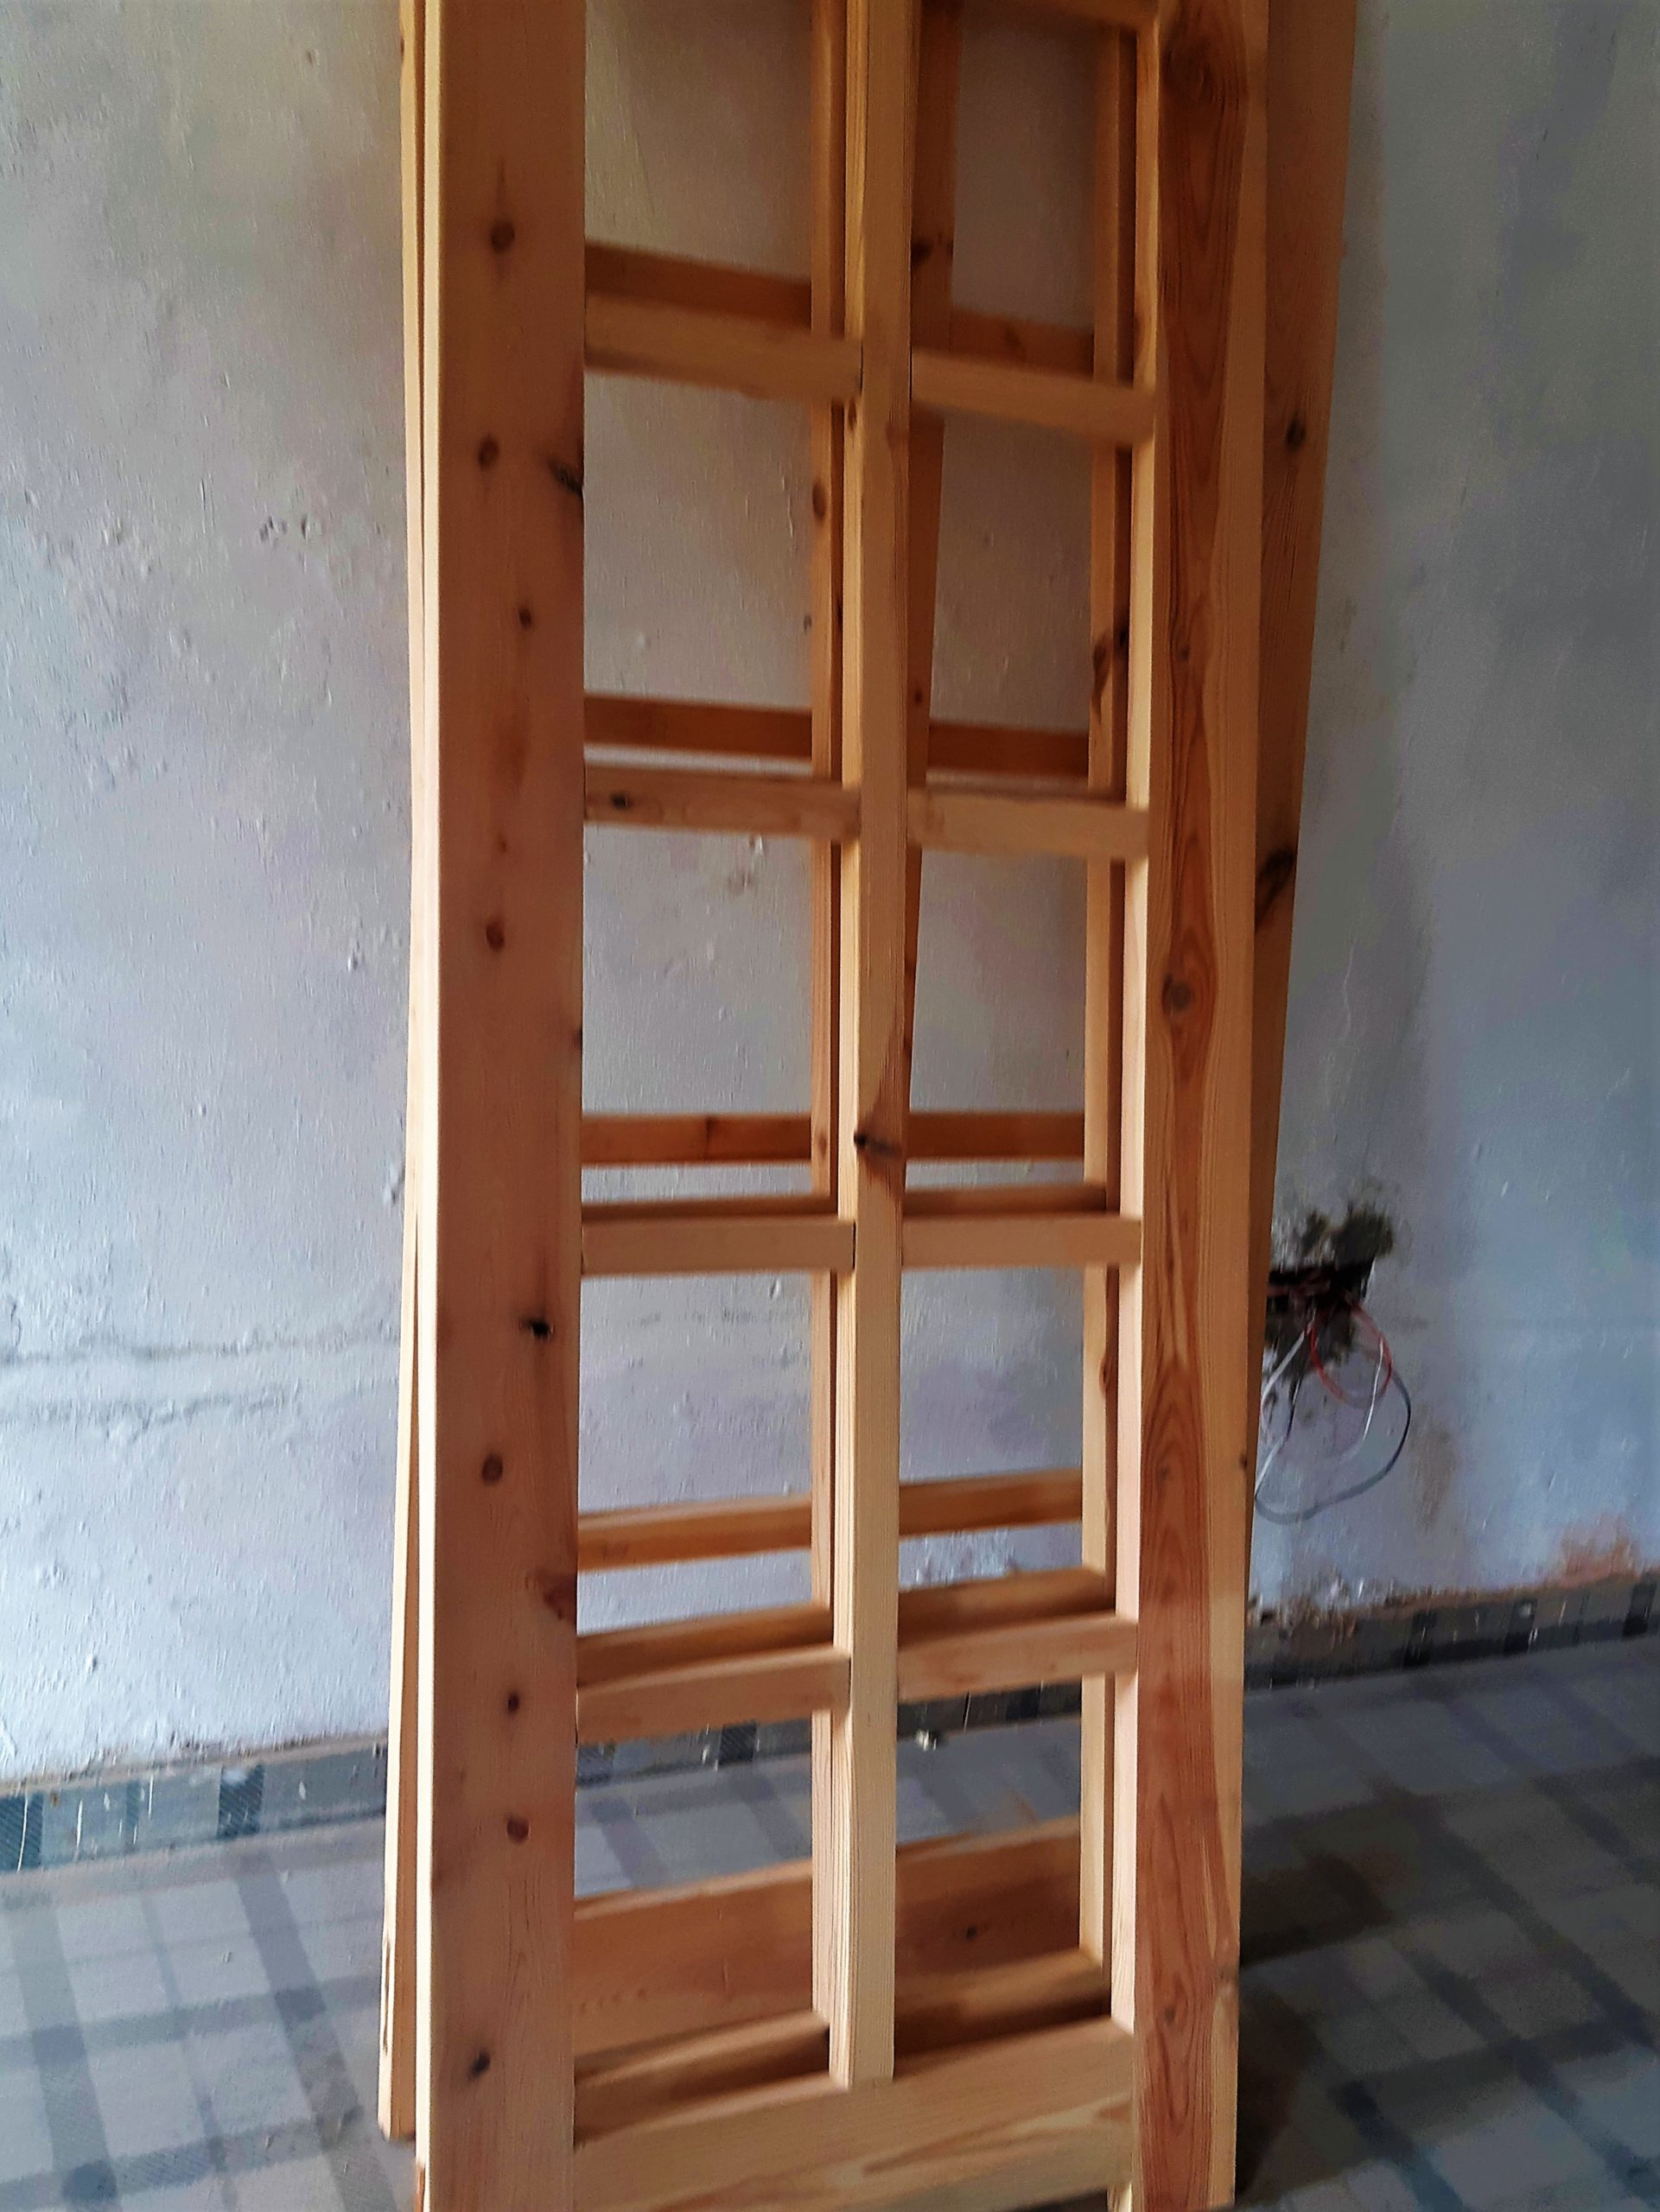 LEARN HOW TO MAKE PINE WOOD DOOR